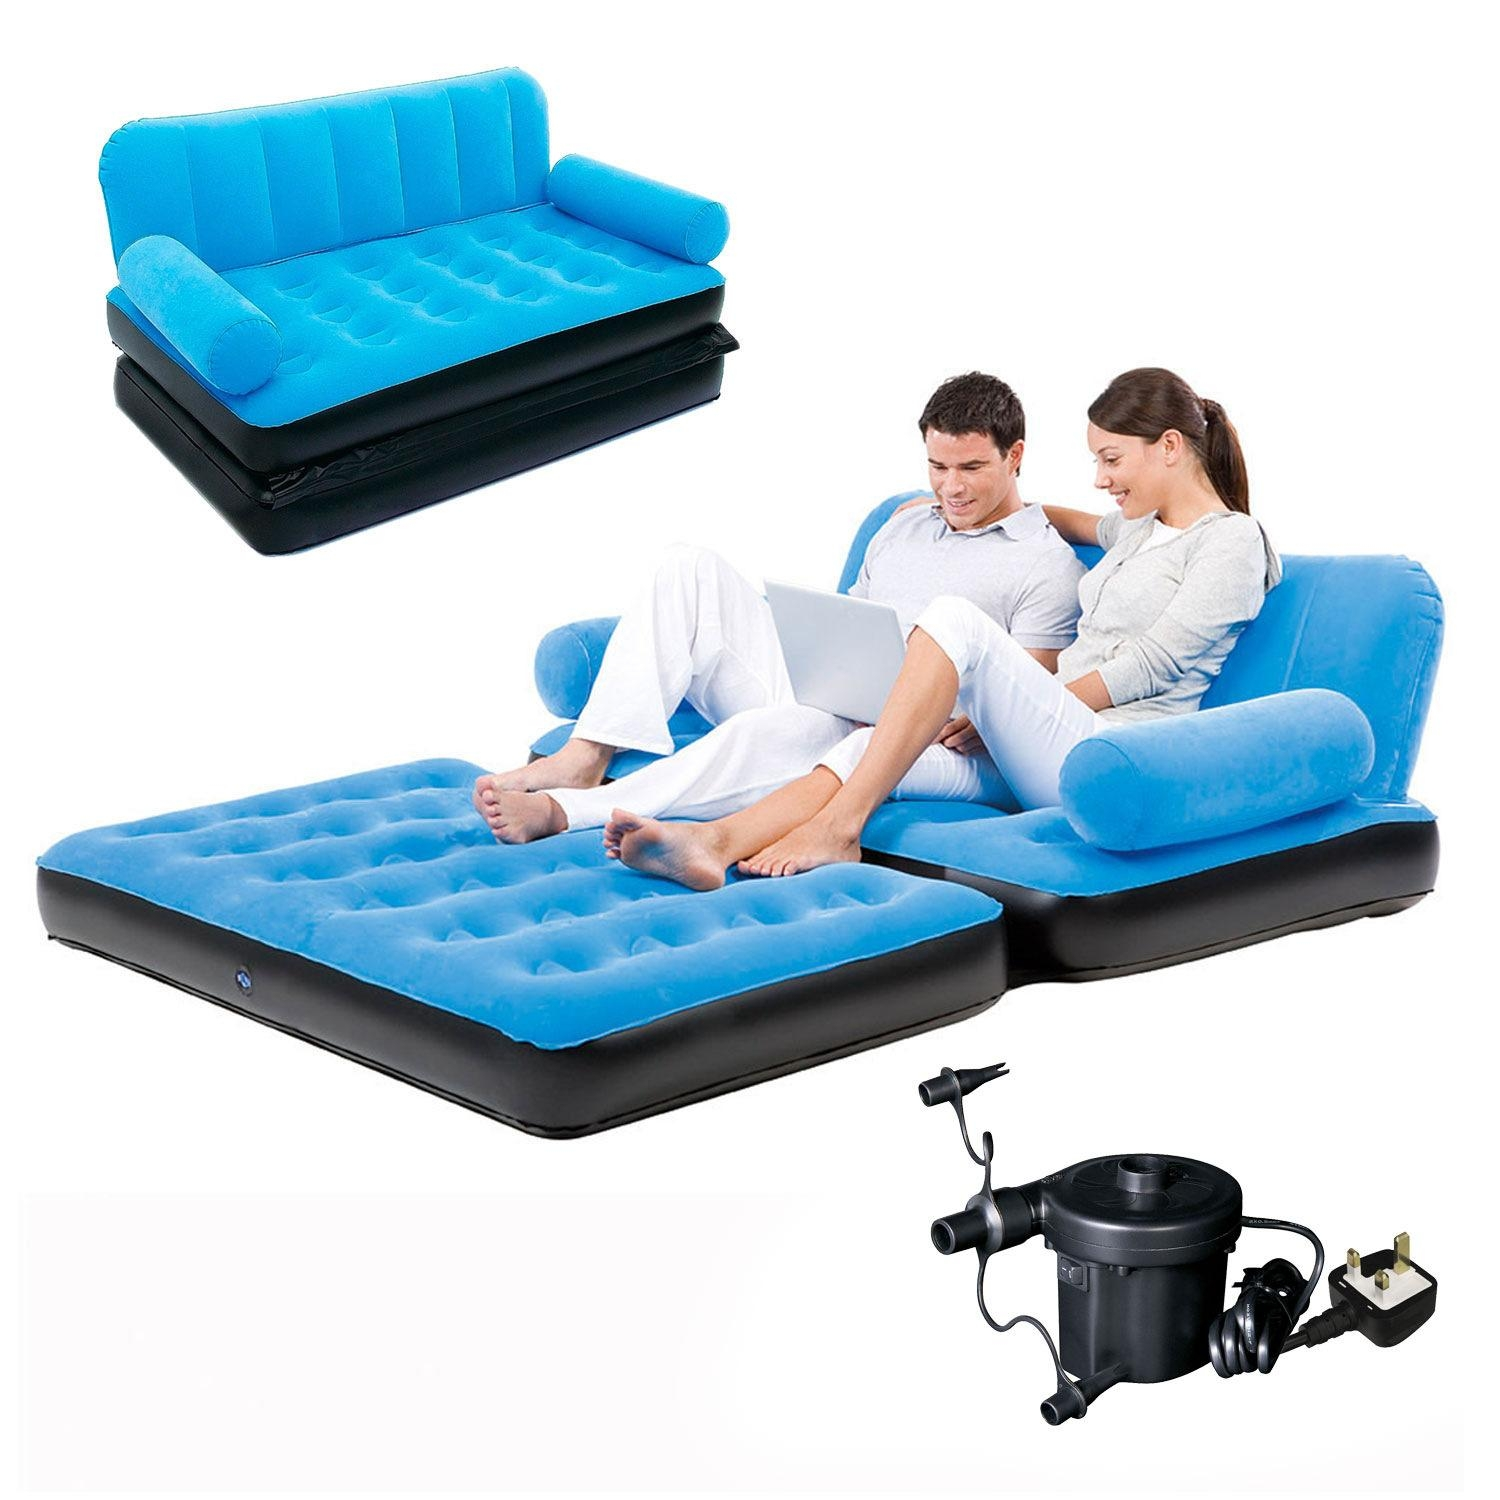 Inflatable Double Sofa Air Bed Couch Blow Up Mattress With Pump | Ebay Intended For Inflatable Sofa Beds Mattress (Image 4 of 20)